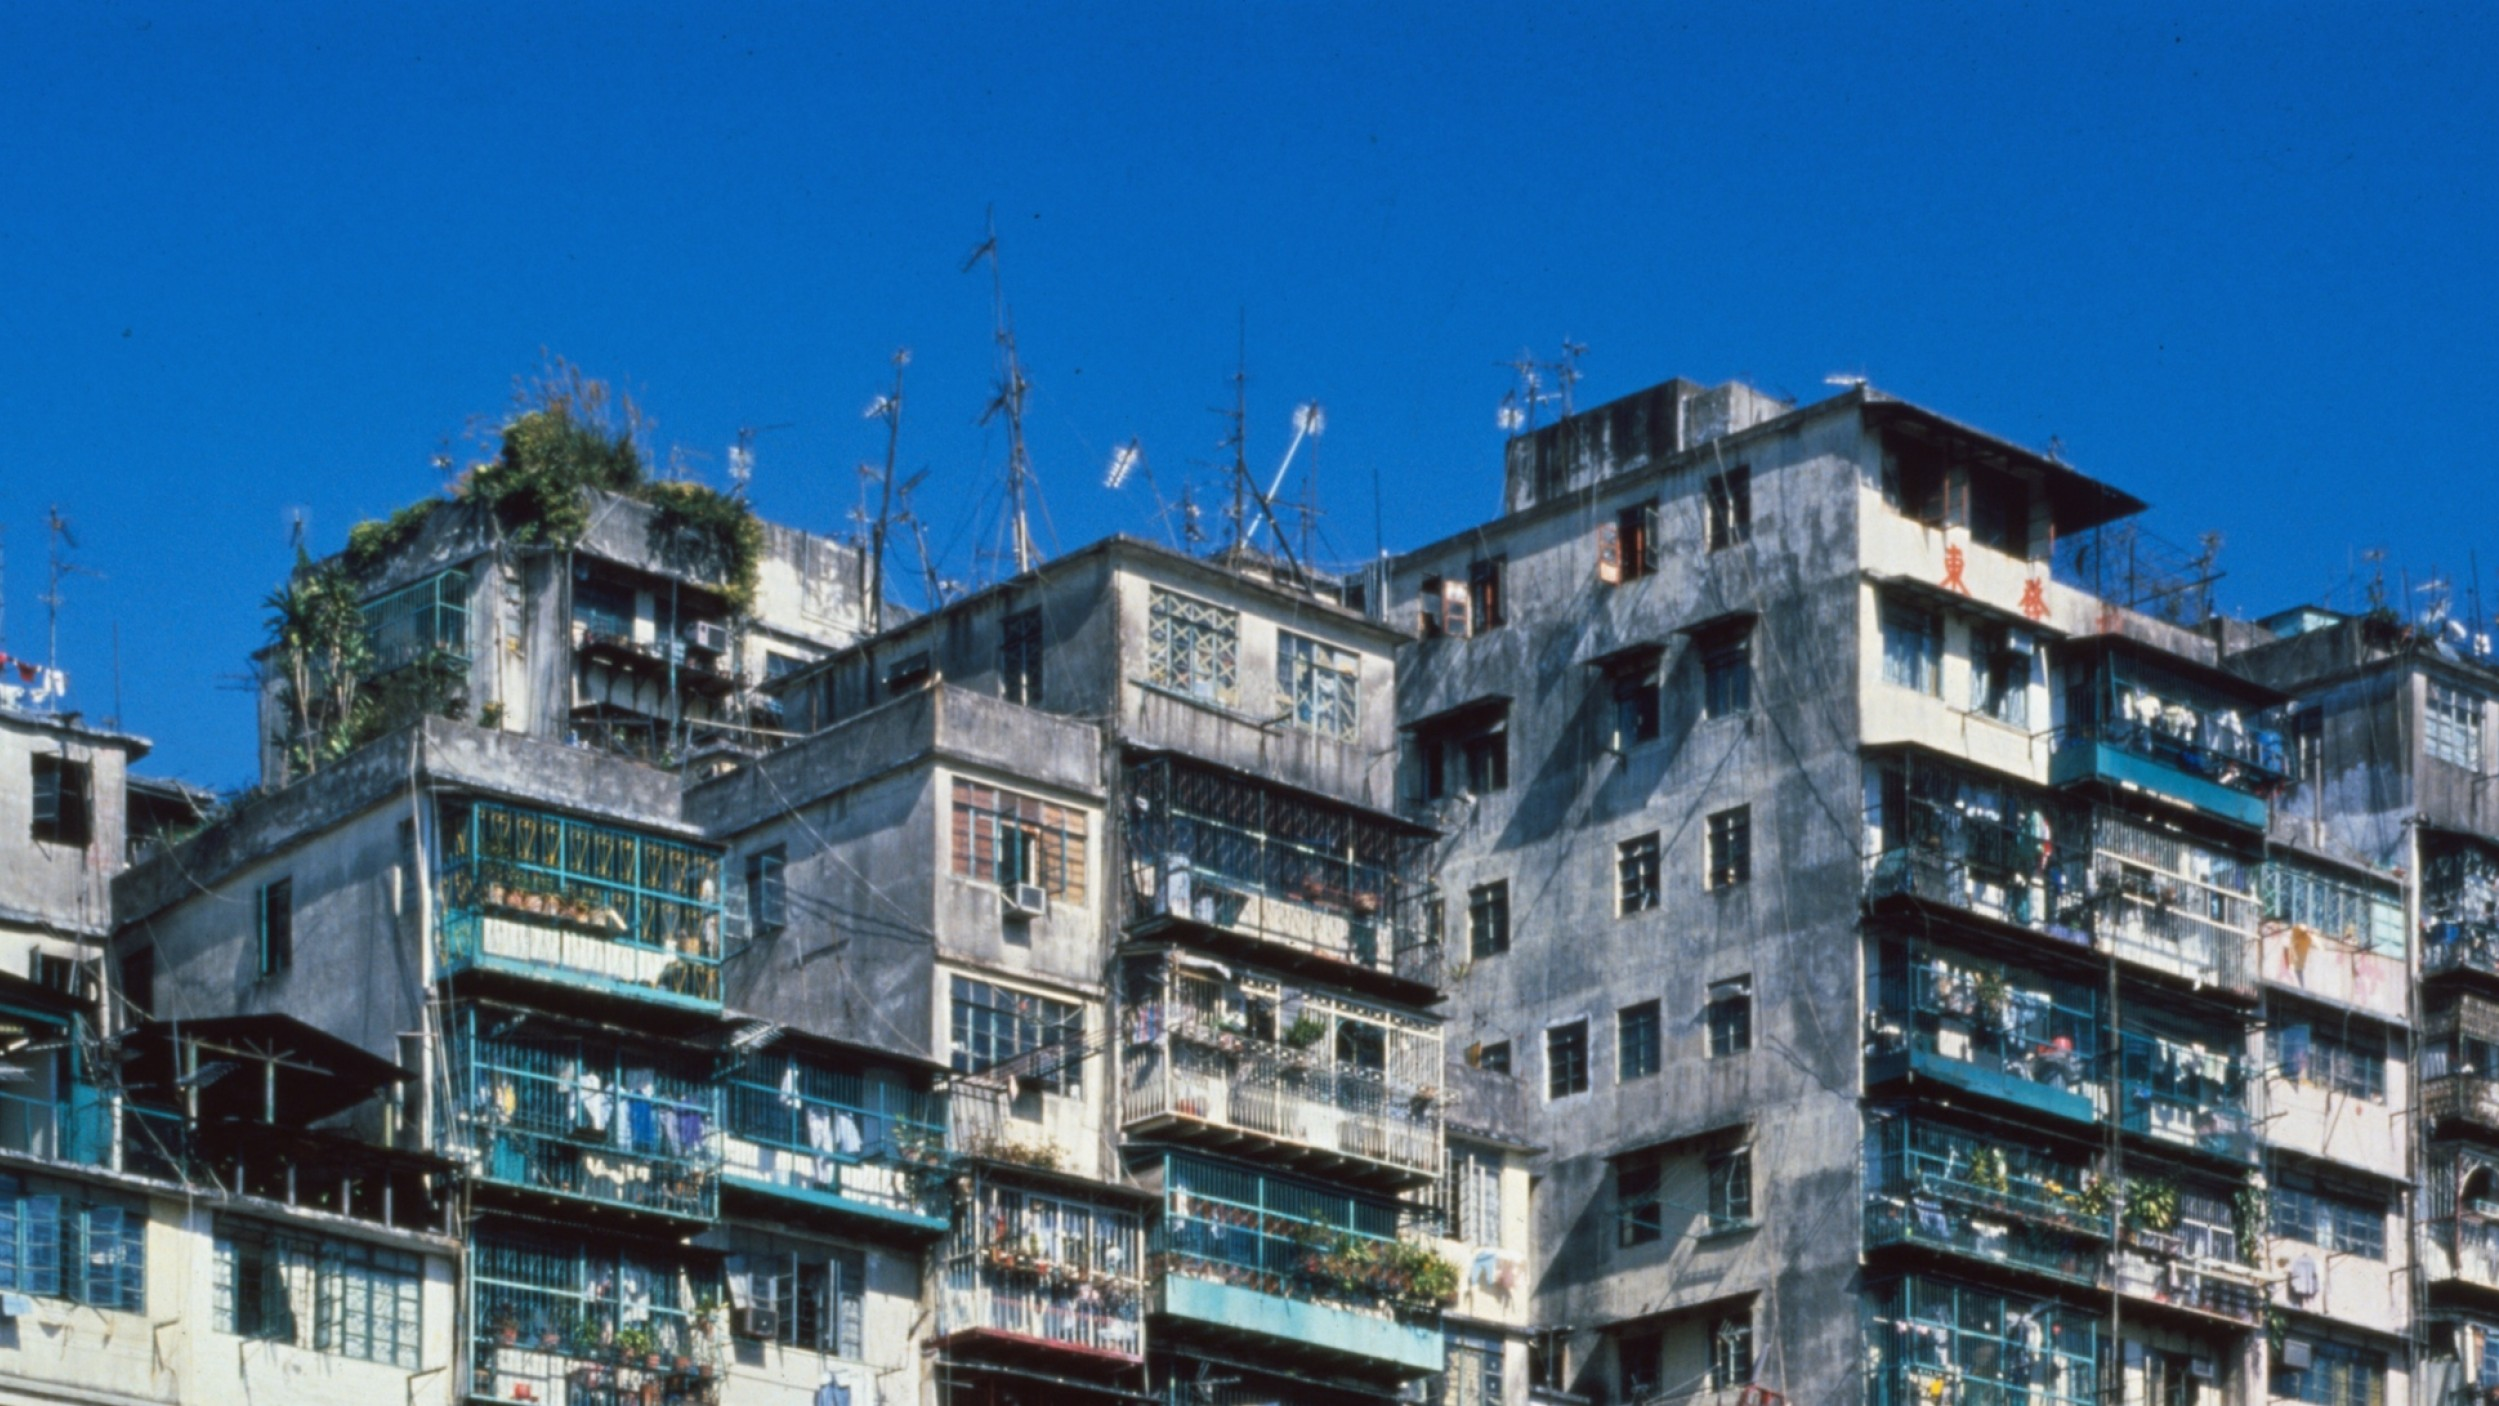 A New Look at Kowloon Walled City, the Internet's Favorite Cyberpunk Slum